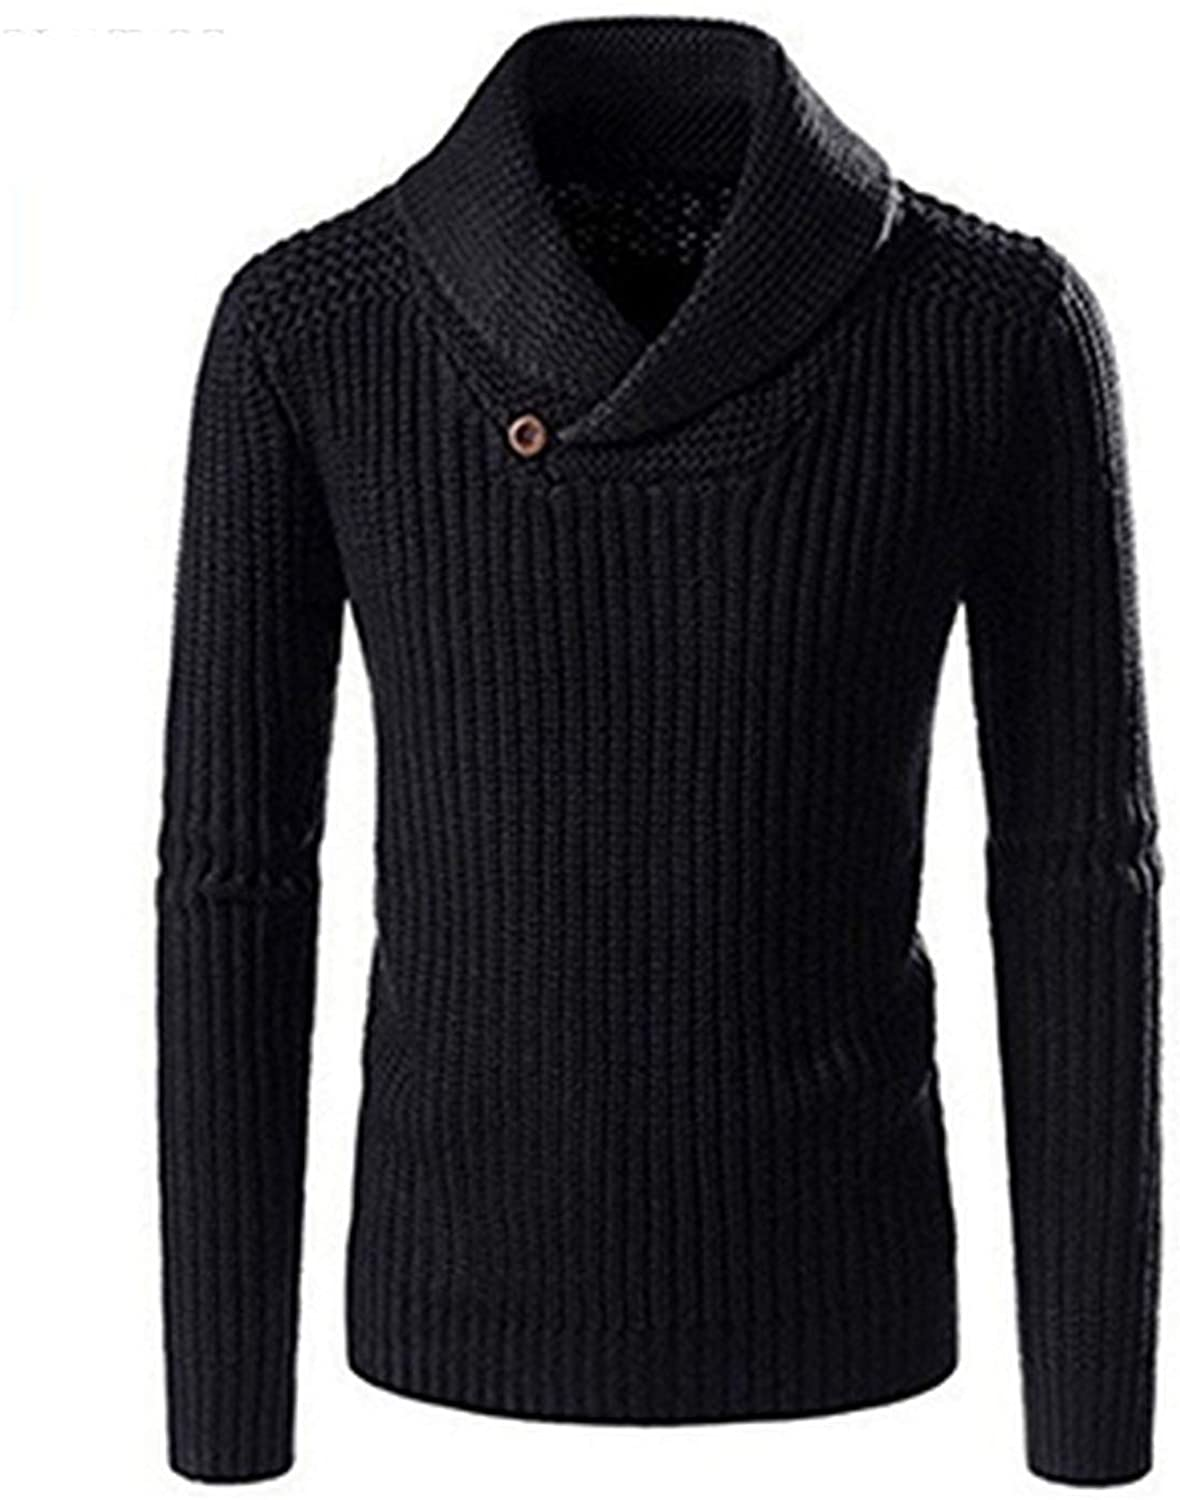 OH WHY Knitted Sweaters Men Turtleneck Pullovers Sueters Autumn Winter Slim Fit Basic Knitwear Clothes